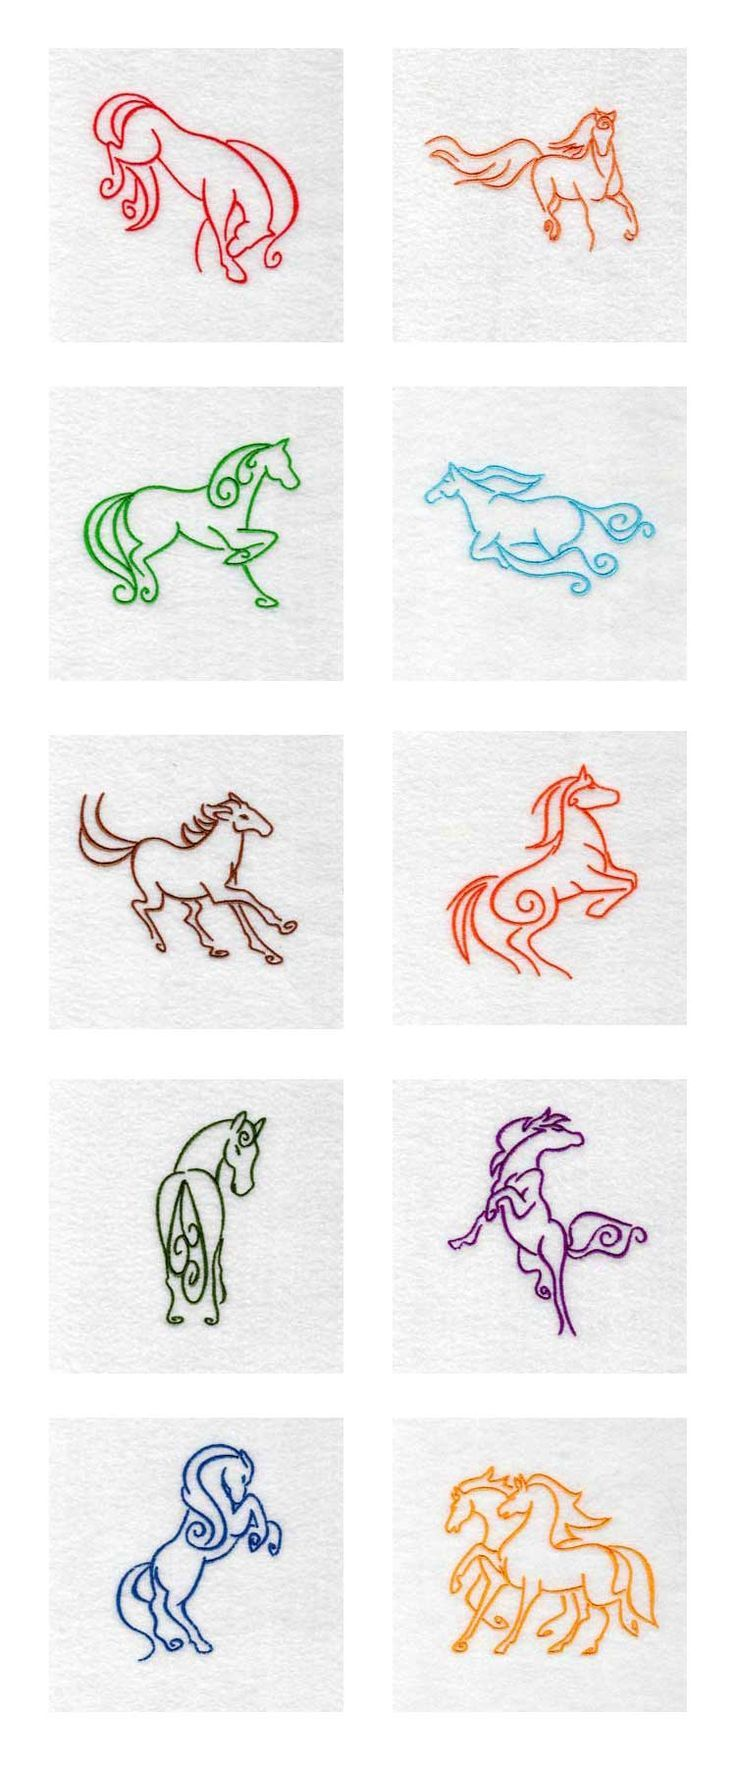 Art Deco Horses Embroidery Machine Design Details -- Would also make splendid #horse #tattoos are website #logos. Design was found at designsbysick.com but I can not find it there now. Custom horse logos can be purchased at Horse-Logos.com (scheduled via http://www.tailwindapp.com?utm_source=pinterest&utm_medium=twpin&utm_content=post7514792&utm_campaign=scheduler_attribution)